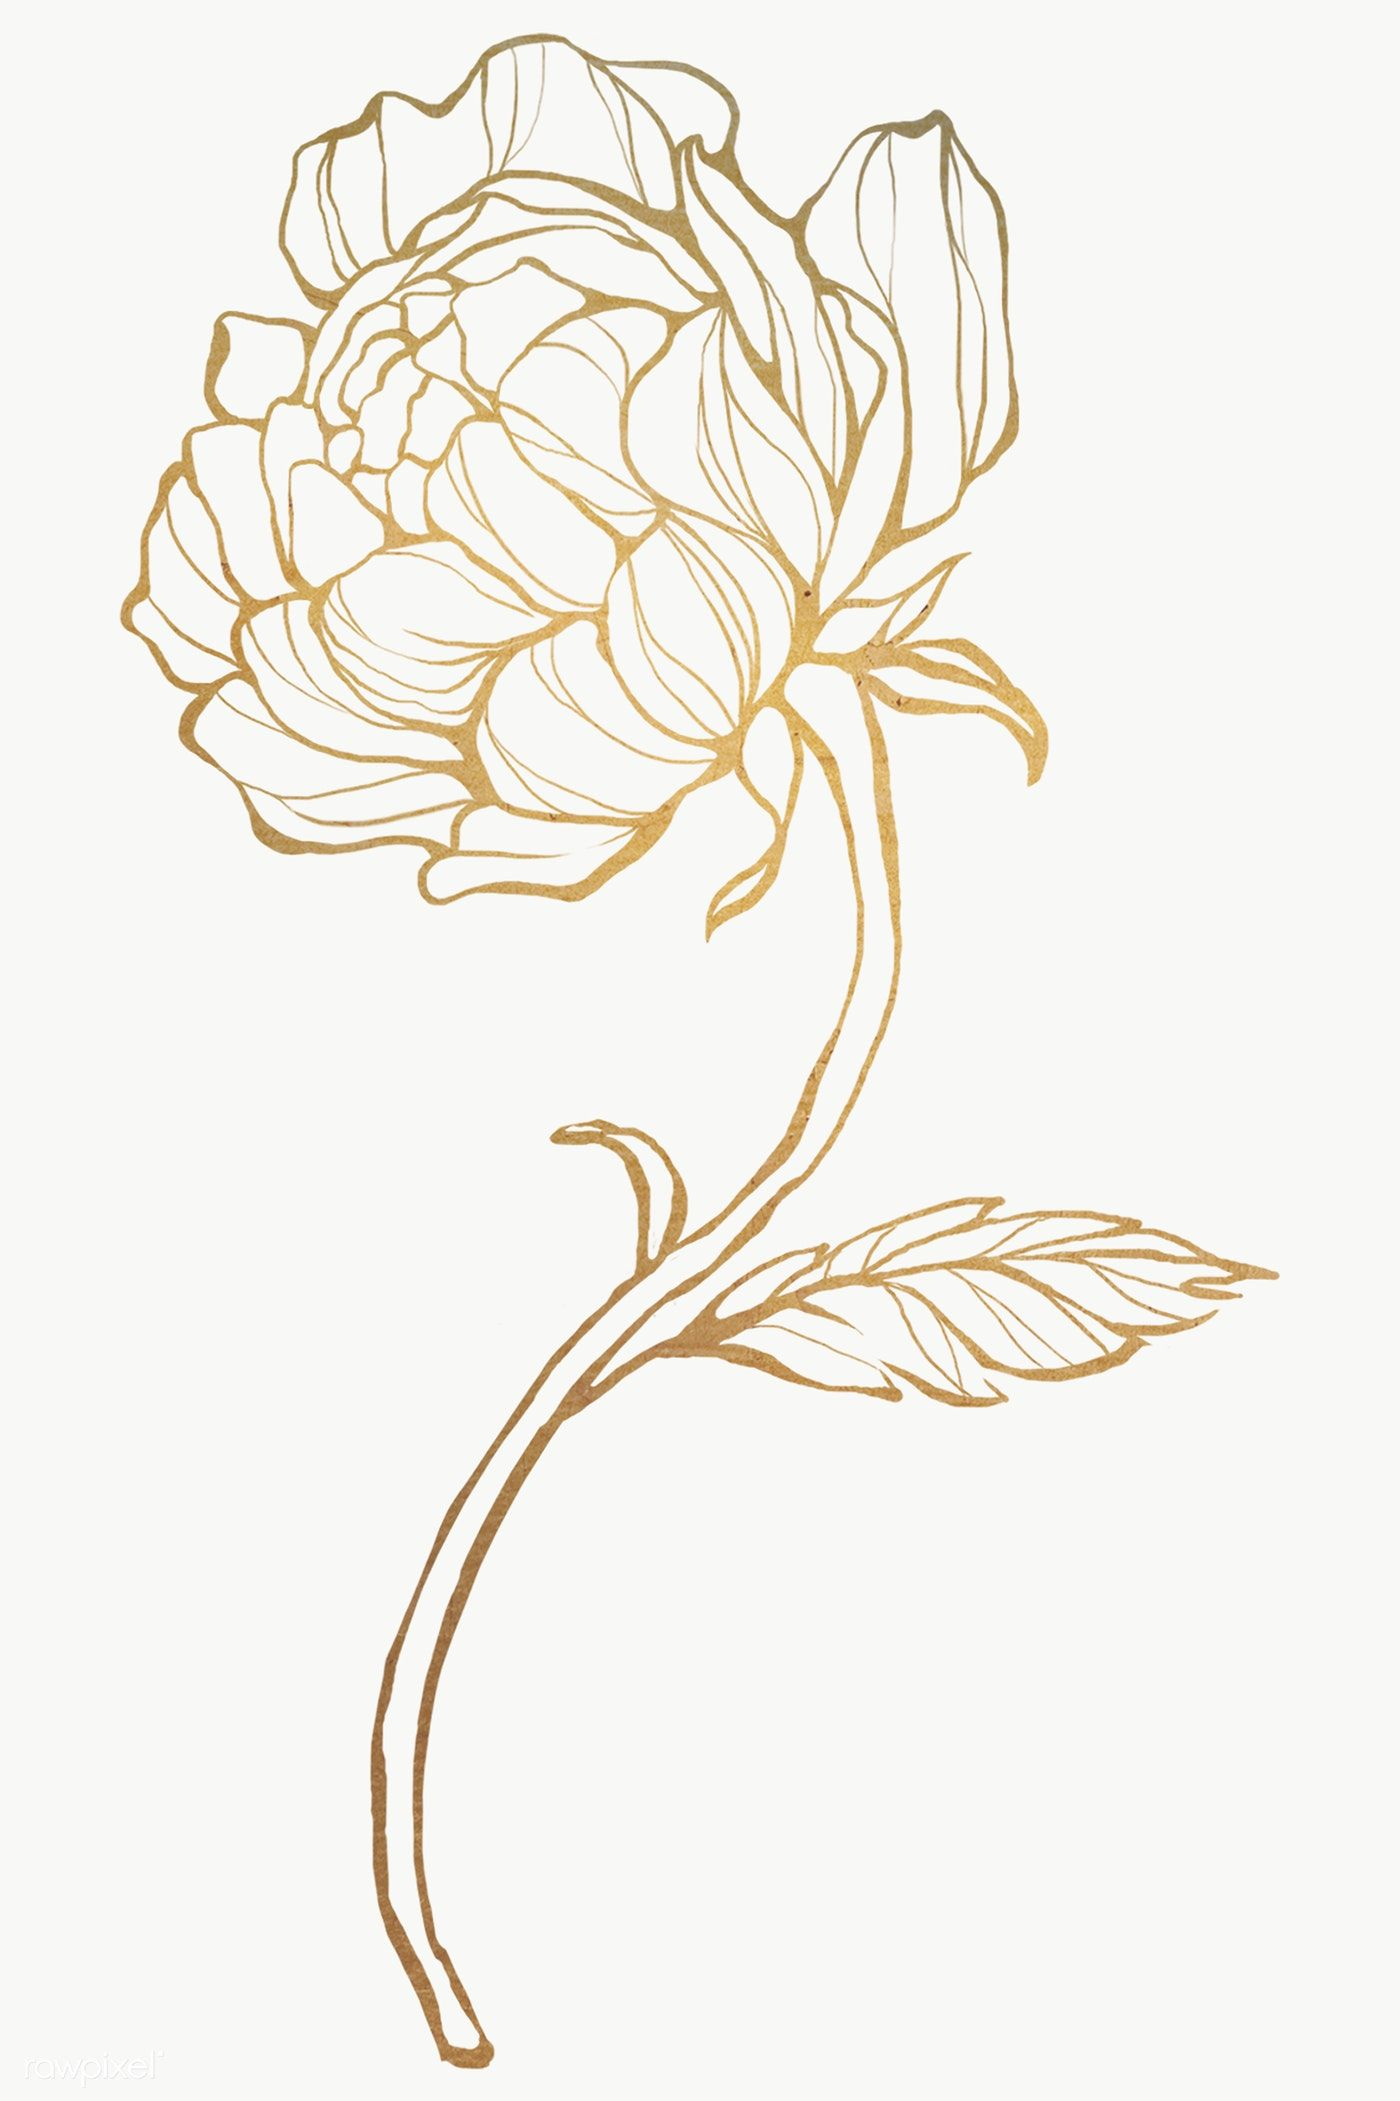 Download Premium Png Of Gold Flower Outline Transparent Png 2019780 Flower Outline Outline Art Line Art Flowers